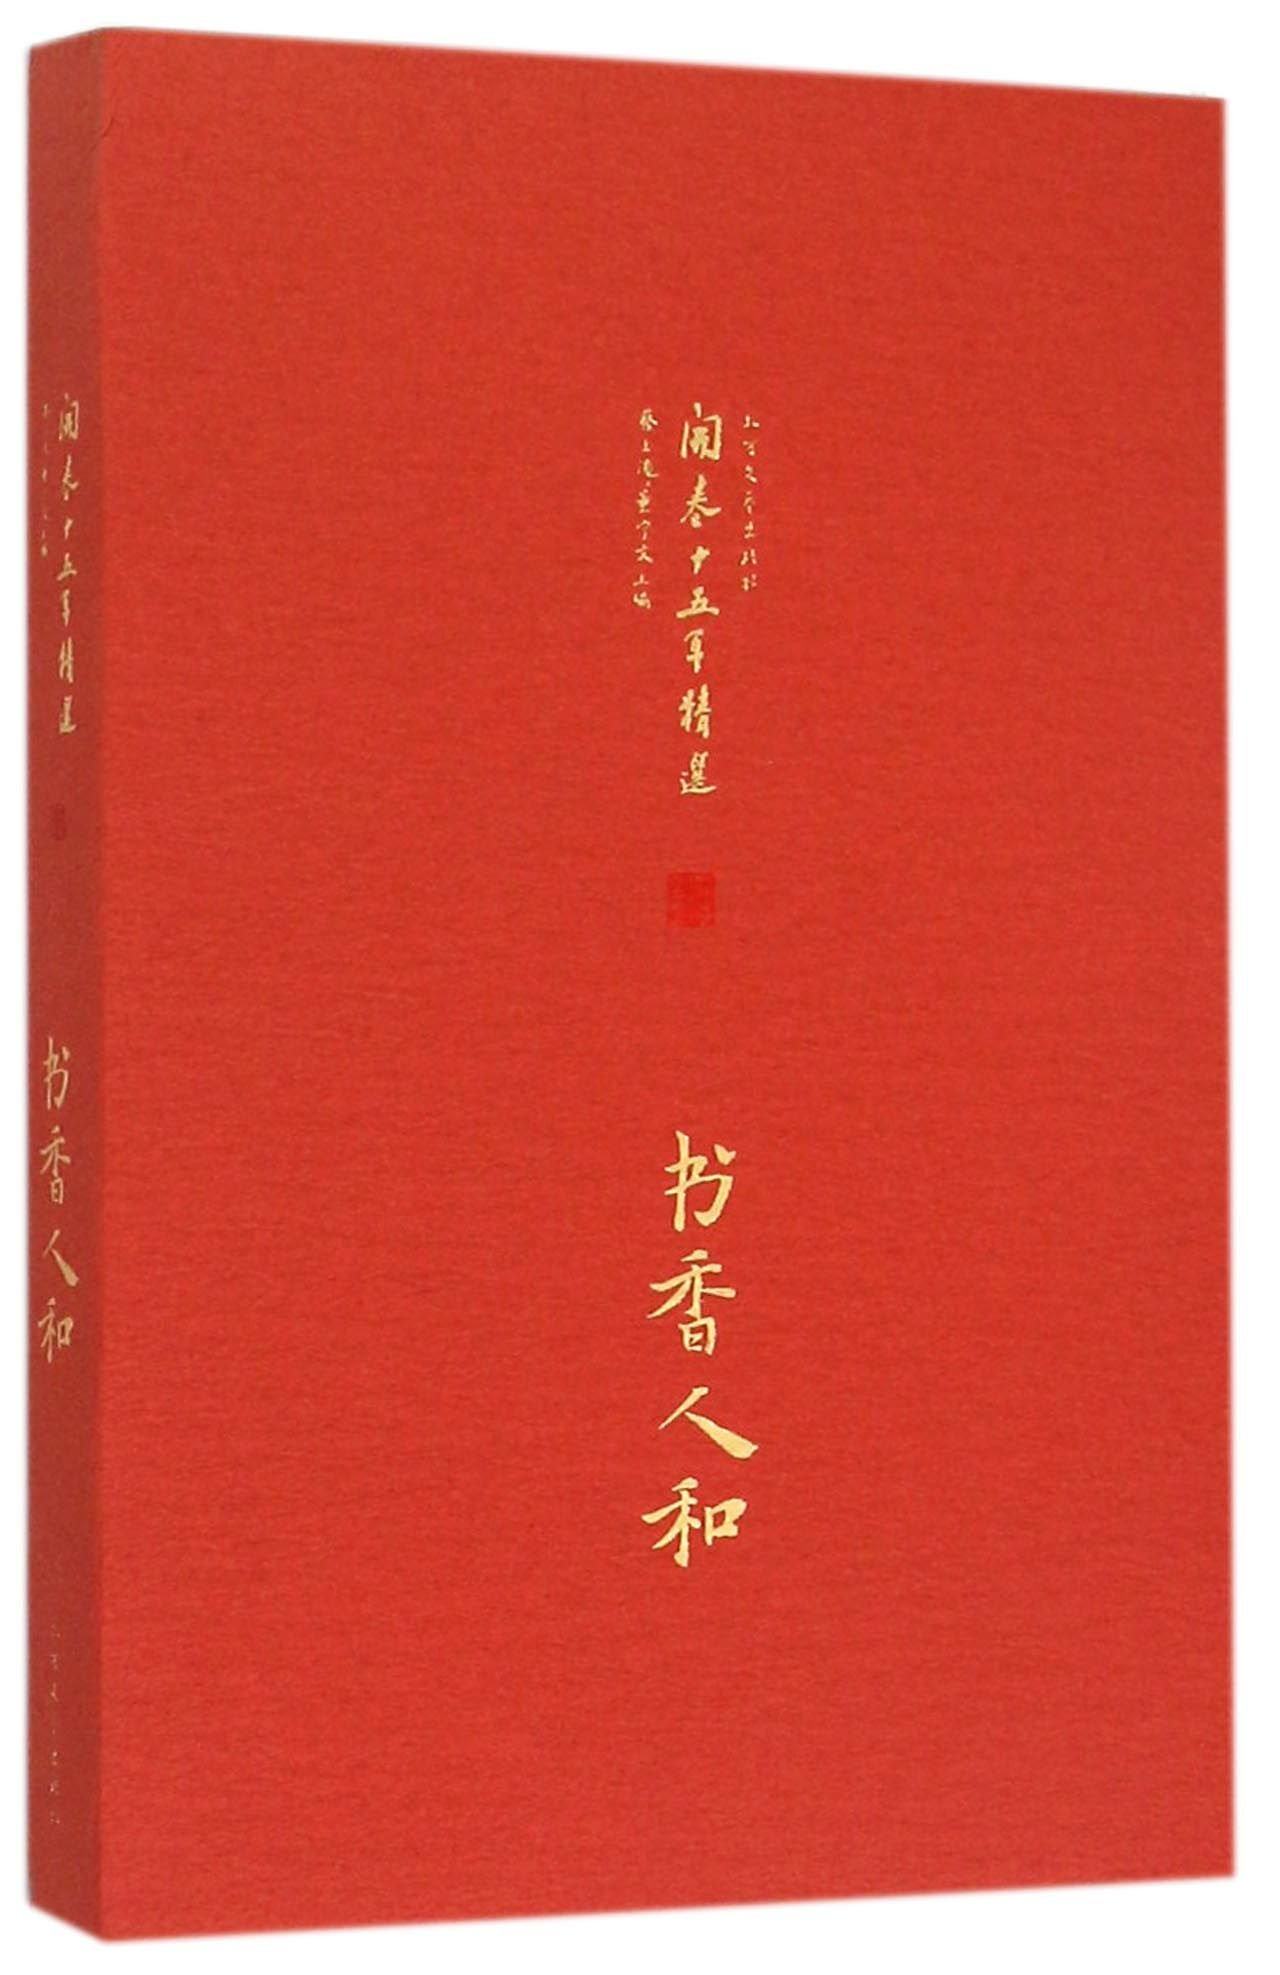 Featured scholarly and unwinding fifteen years(Chinese Edition) pdf epub